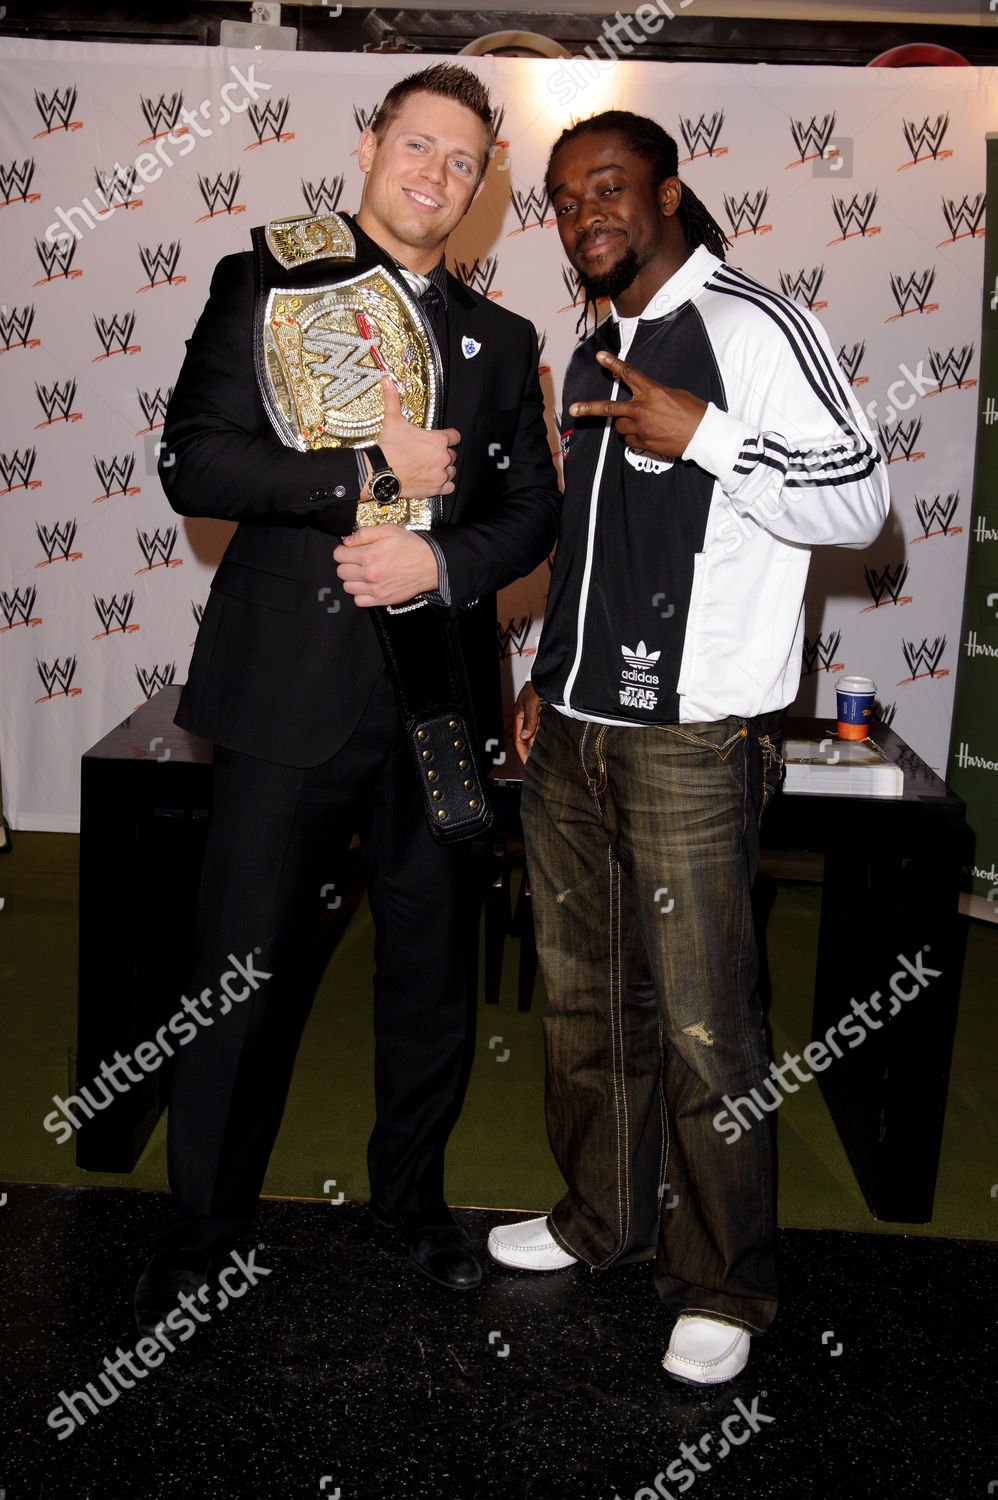 Stock photo of WWE stars The Miz and Kofi Kingston launching a collection of figurines and branded merchandise, Harrods, London, Britain - 19 Apr 2011